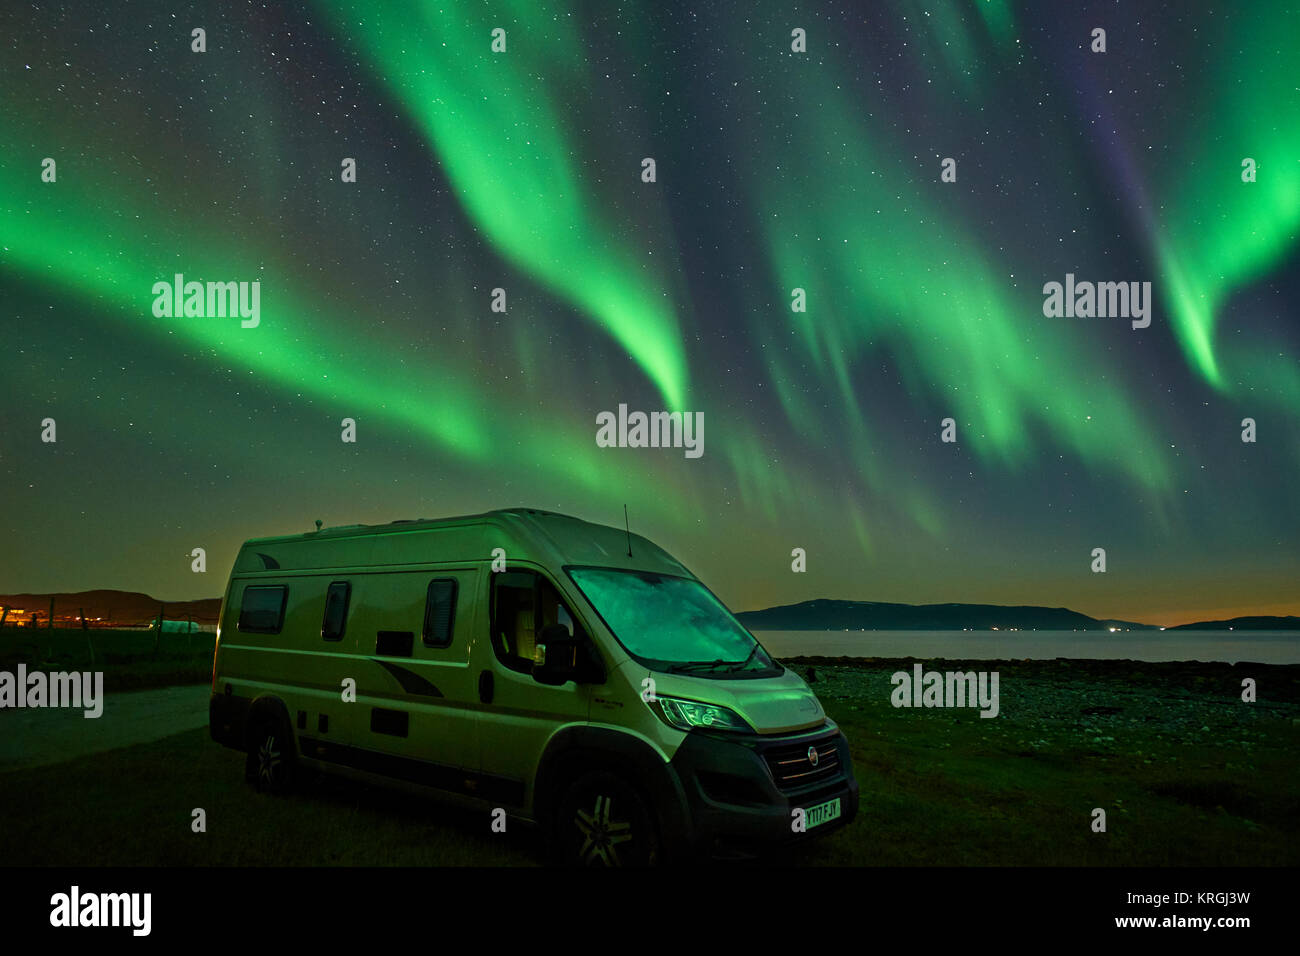 Campervan and Aurora Borealis, Northern Lights, Russelv, Lyngen, Troms, Norway - Stock Image